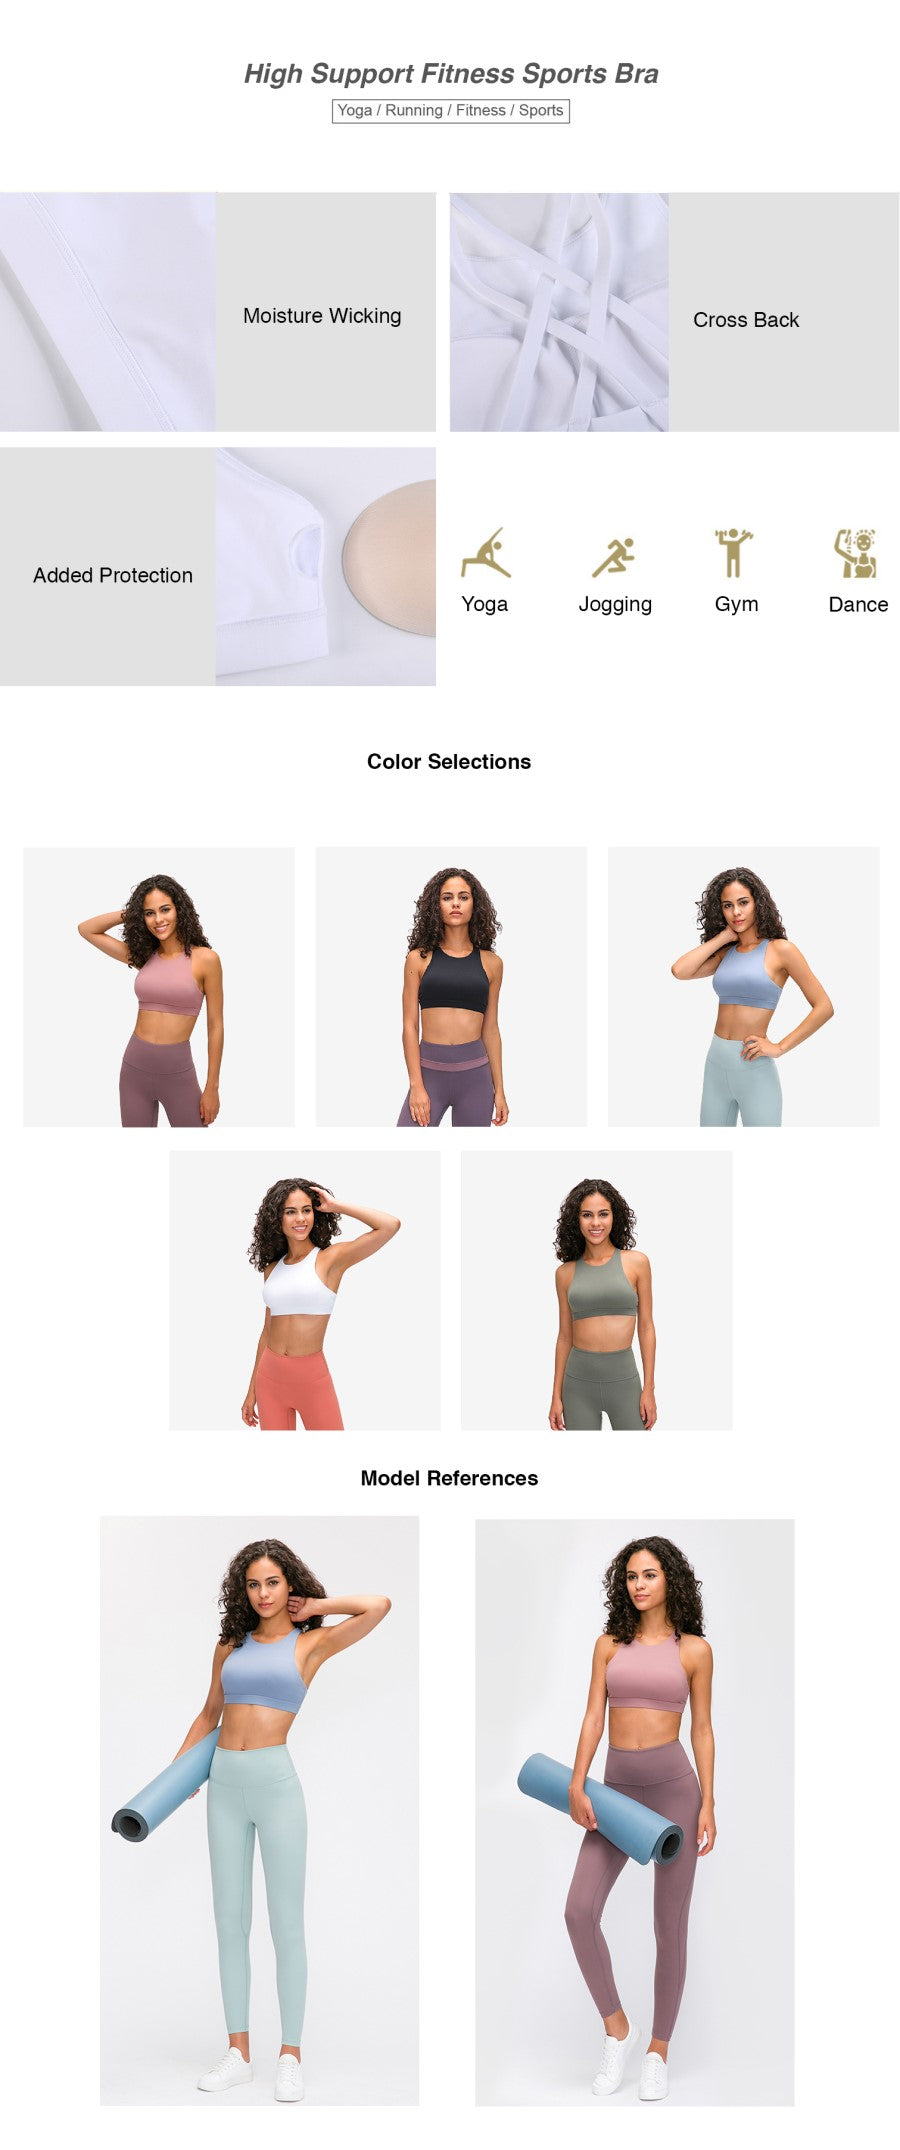 High Support Fitness Sports Bra